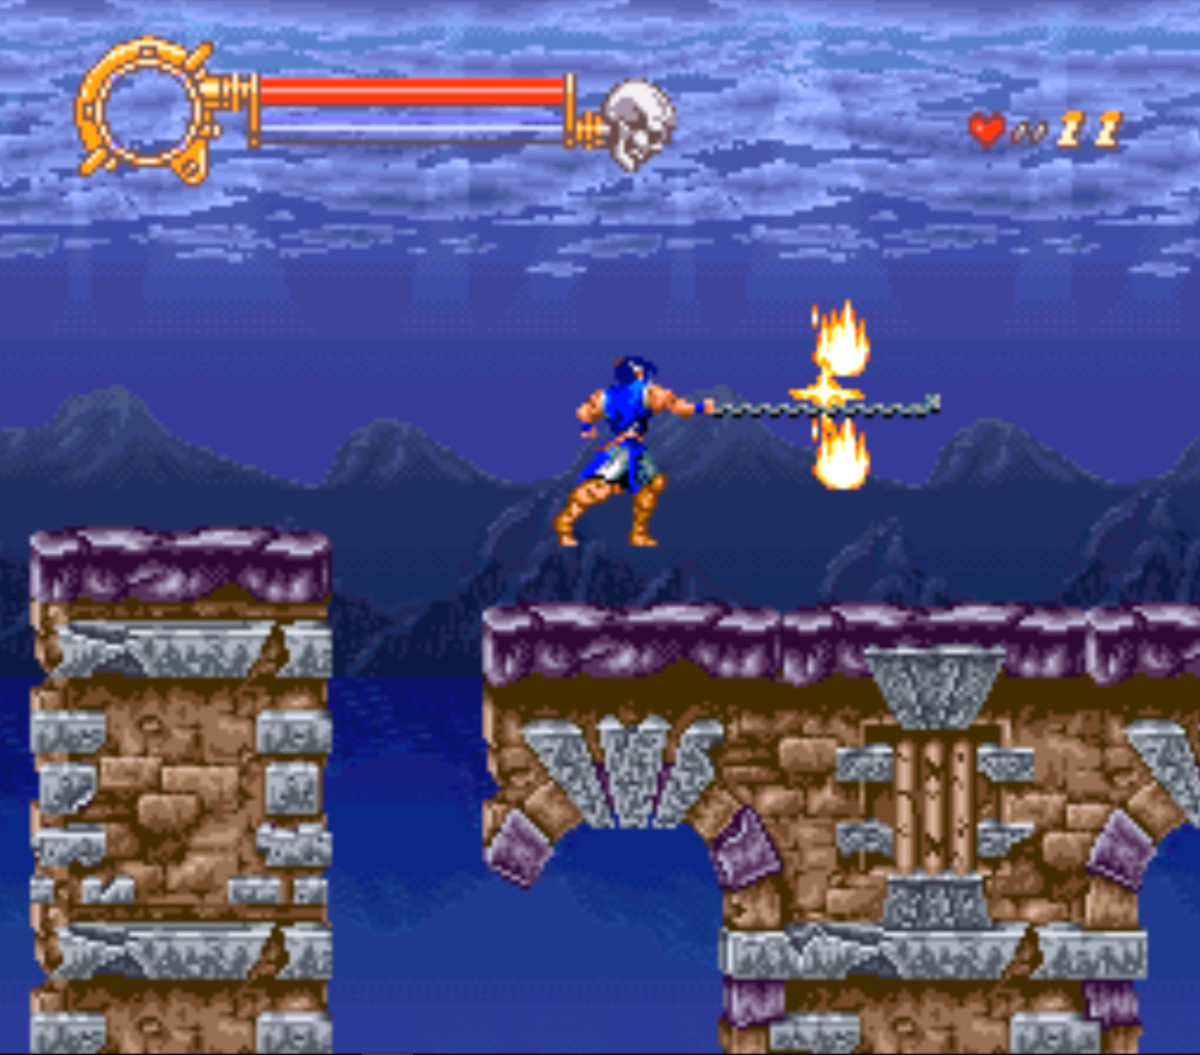 Rondo of Blood was ported over to the SNES as Dracula XX. Unfortunately, the reduced mechanics and gameplay did not go well with gamers.